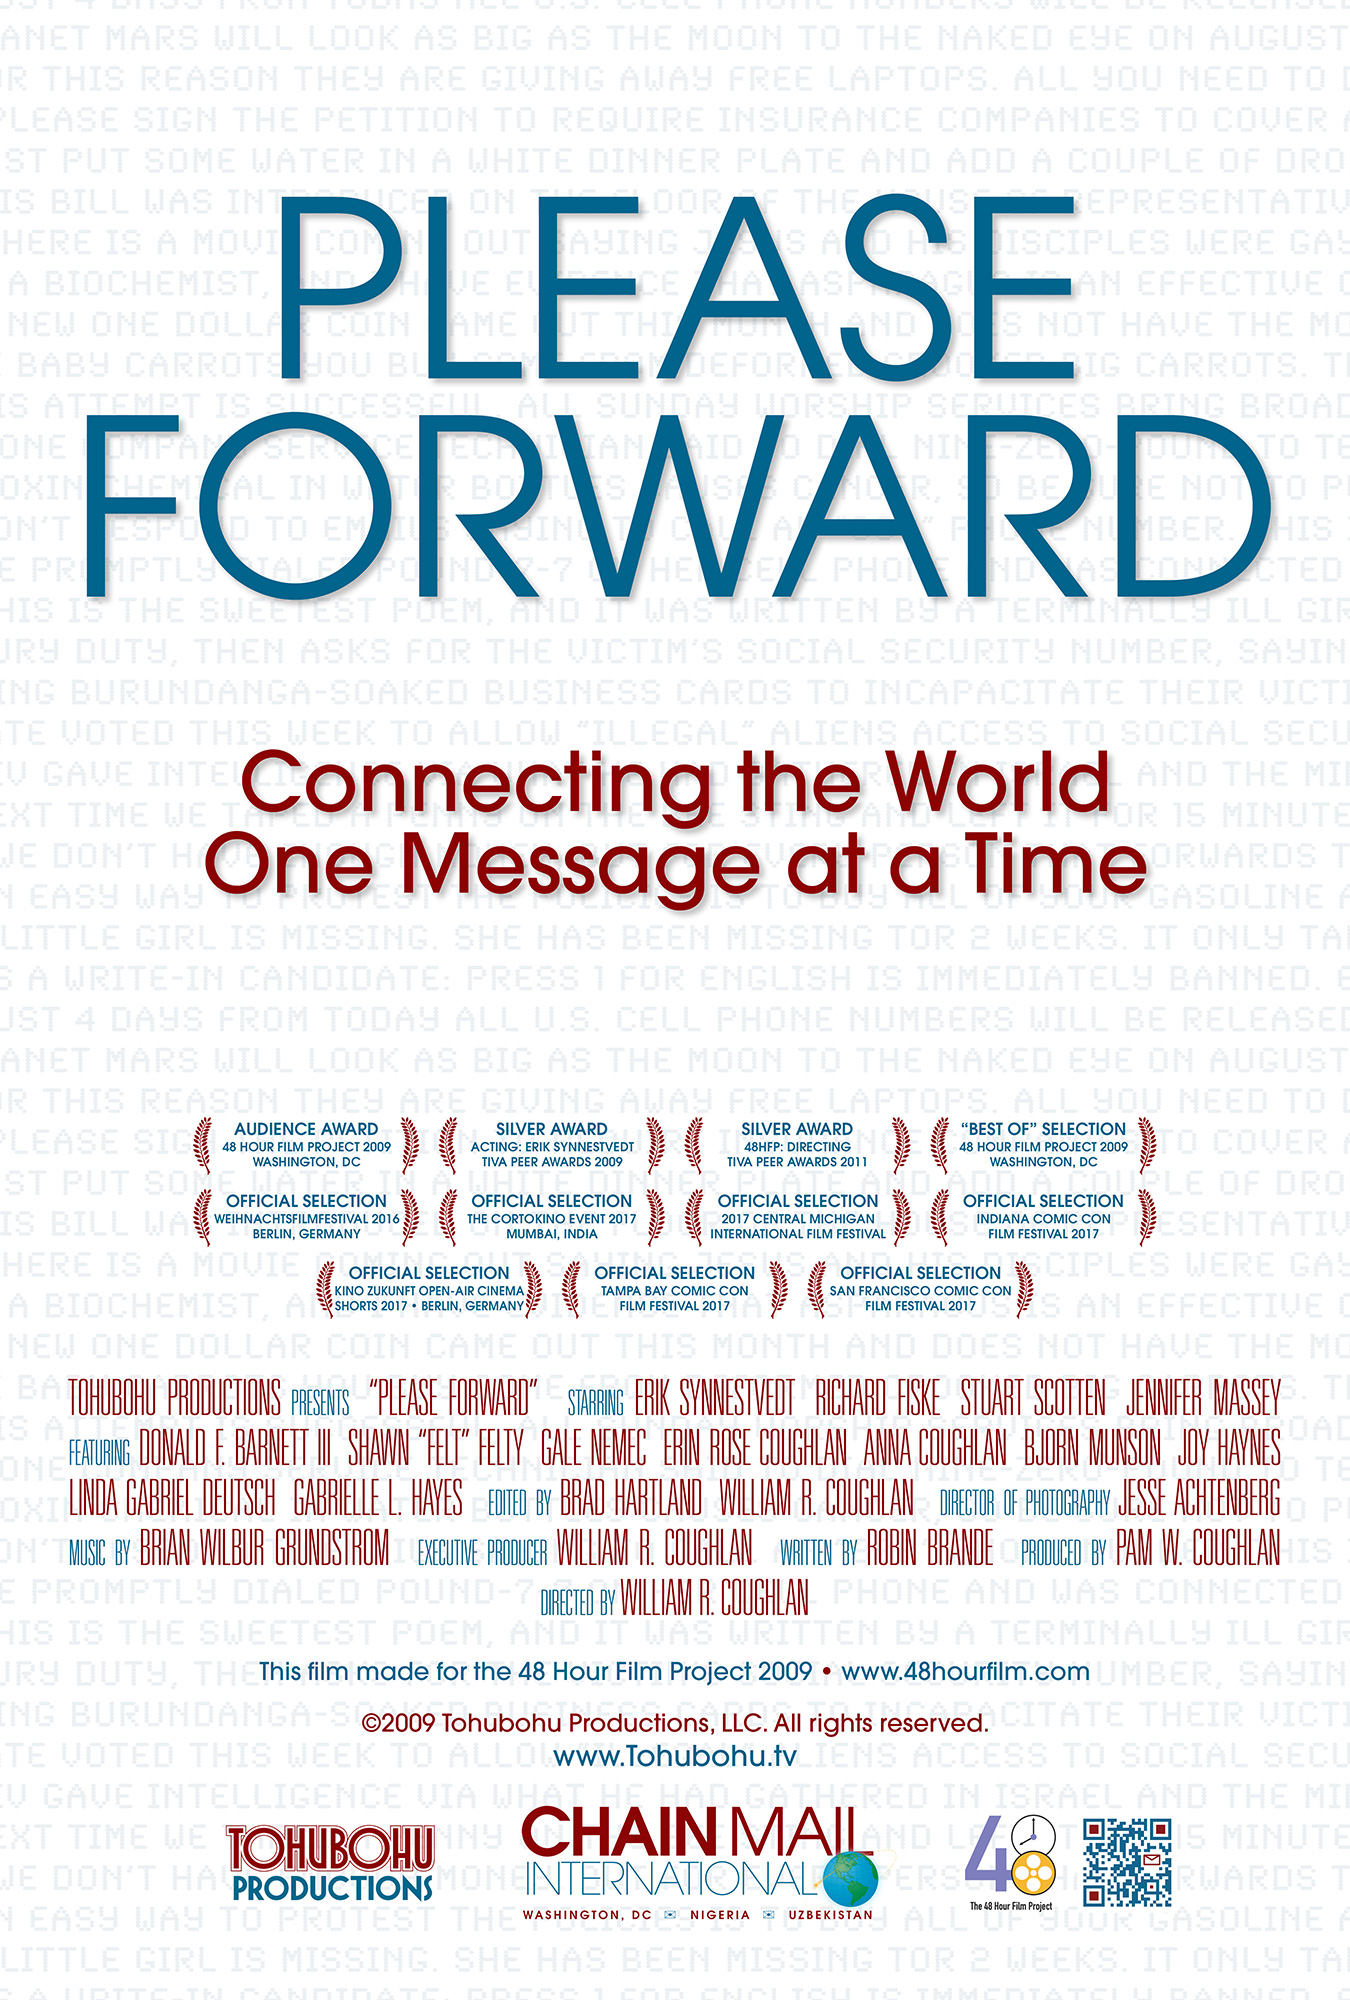 """Please Forward - 2009 · 8:15 · written by Robin Brande · produced by Pam W. Coughlan · directed by William R. CoughlanChain Mail International has had a banner year; the tanking economy is proving an unexpected boon for the firm's time-honored business — creating and forwarding chain letters. Through the lens of the firm's holiday party, we get a glimpse into the inner workings of the business, and come to see that as progress moves relentlessly onward, not everyone will be sharing in the group's success.Building on past successes, Toubohu teamed once again with writer Robin Brande and director of photography Jesse Achtenberg for """"Please Forward,"""" produced by Pam W. Coughlan and directed by William R. Coughlan. Produced from May 1st through the 3rd, """"Please Forward"""" marked Tohubohu's fifth year (and sixth entry) in the 48 Hour Film Project, and premiered at the AFI Silver Theatre on Friday, May 8th."""